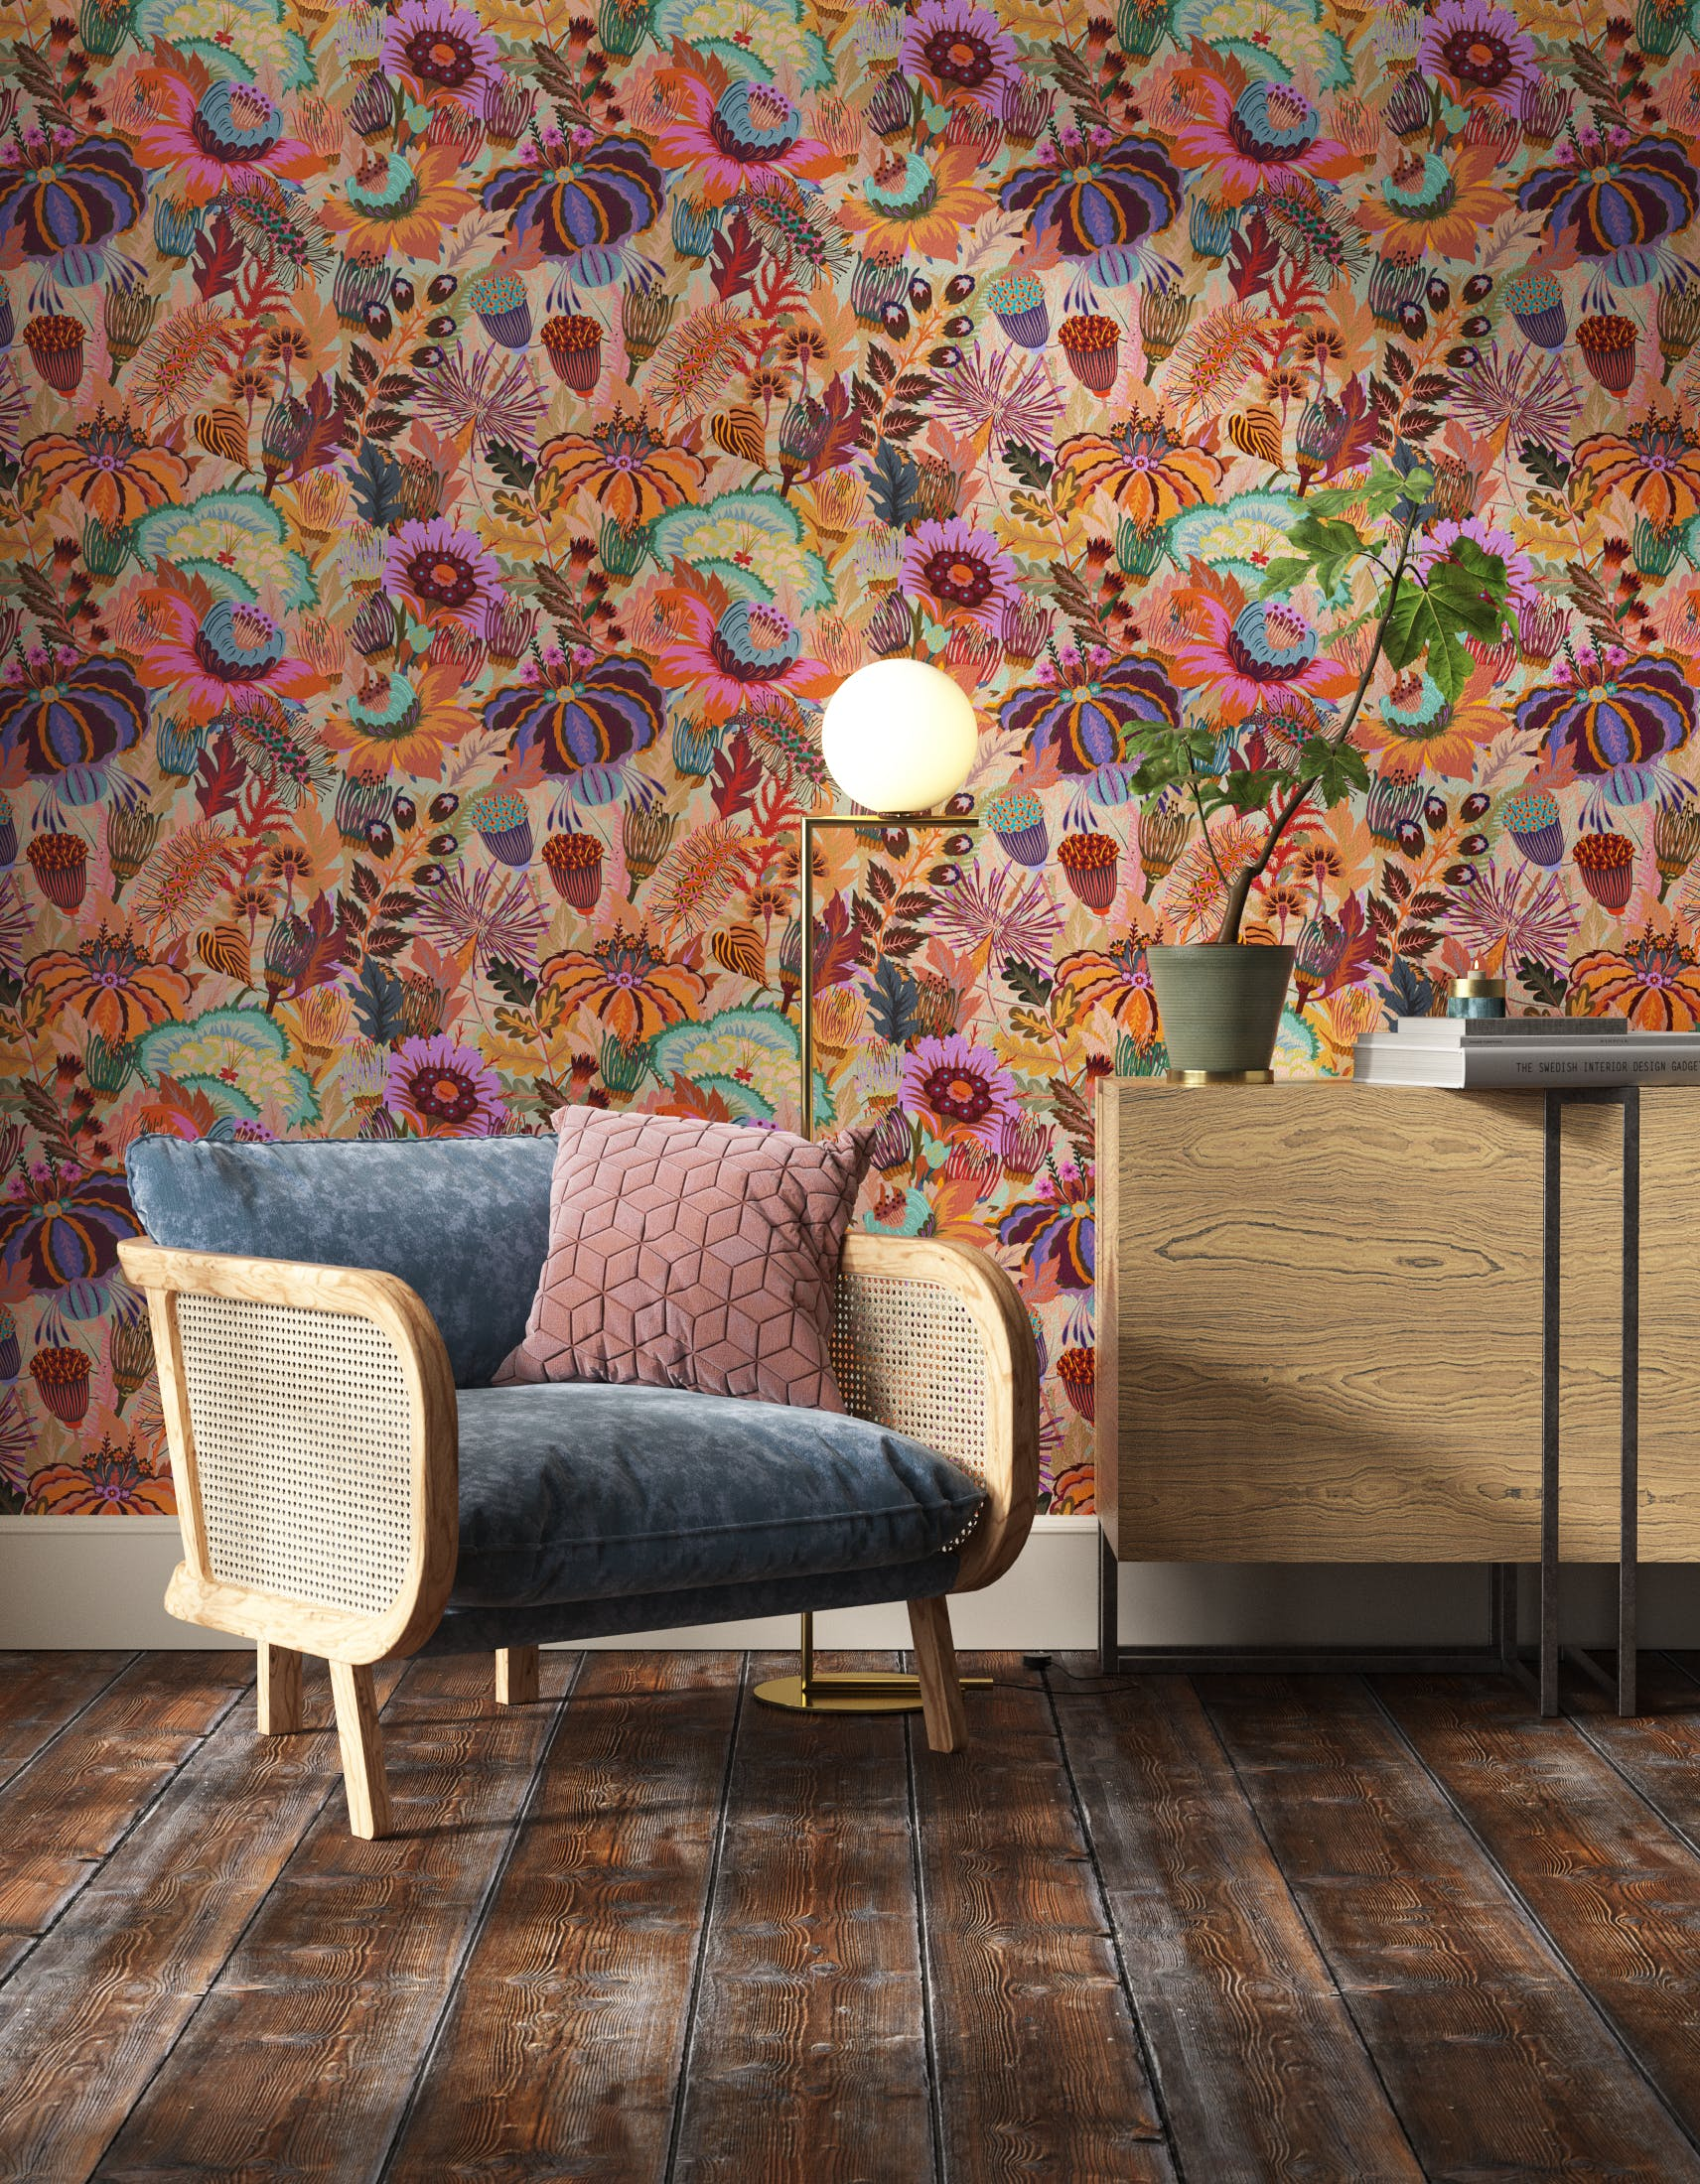 Living room decorated with Lick Mars Meadow 02, an orange floral wallpaper